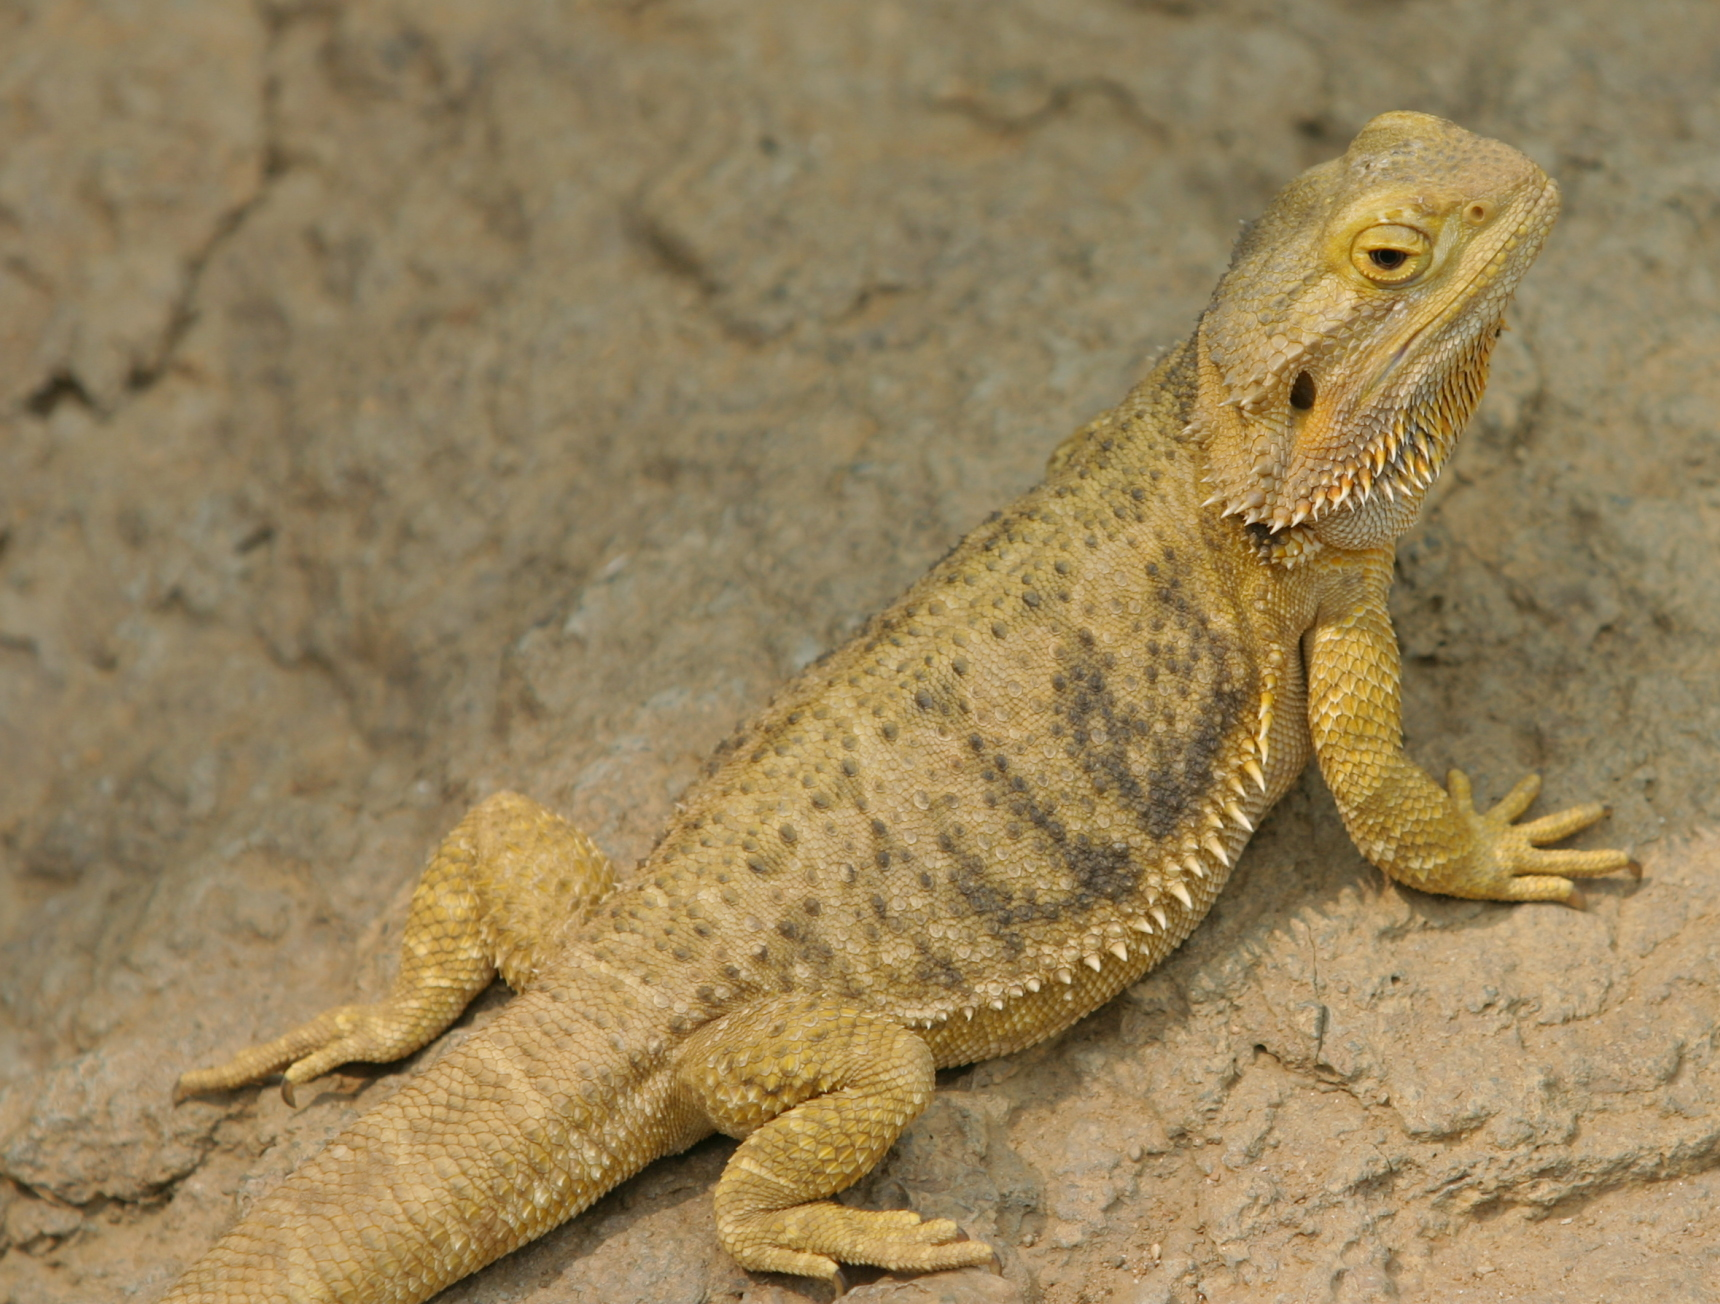 Image of bearded dragon